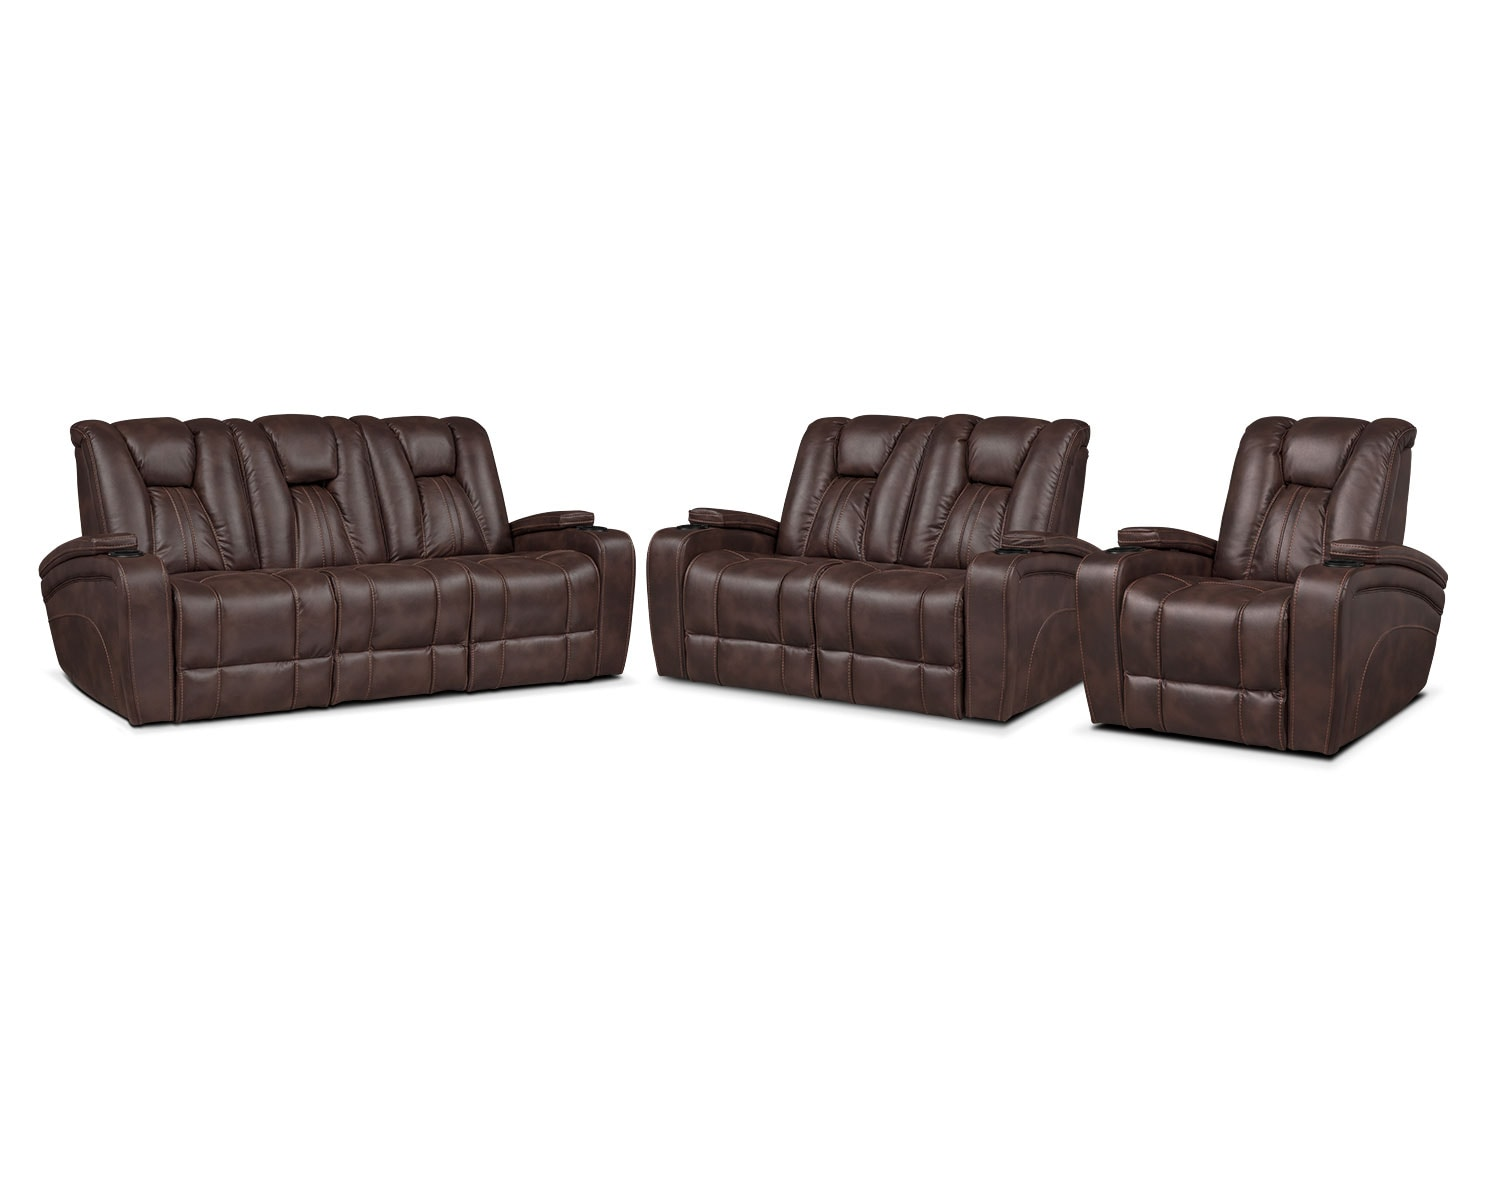 The Pulsar Collection - Brown